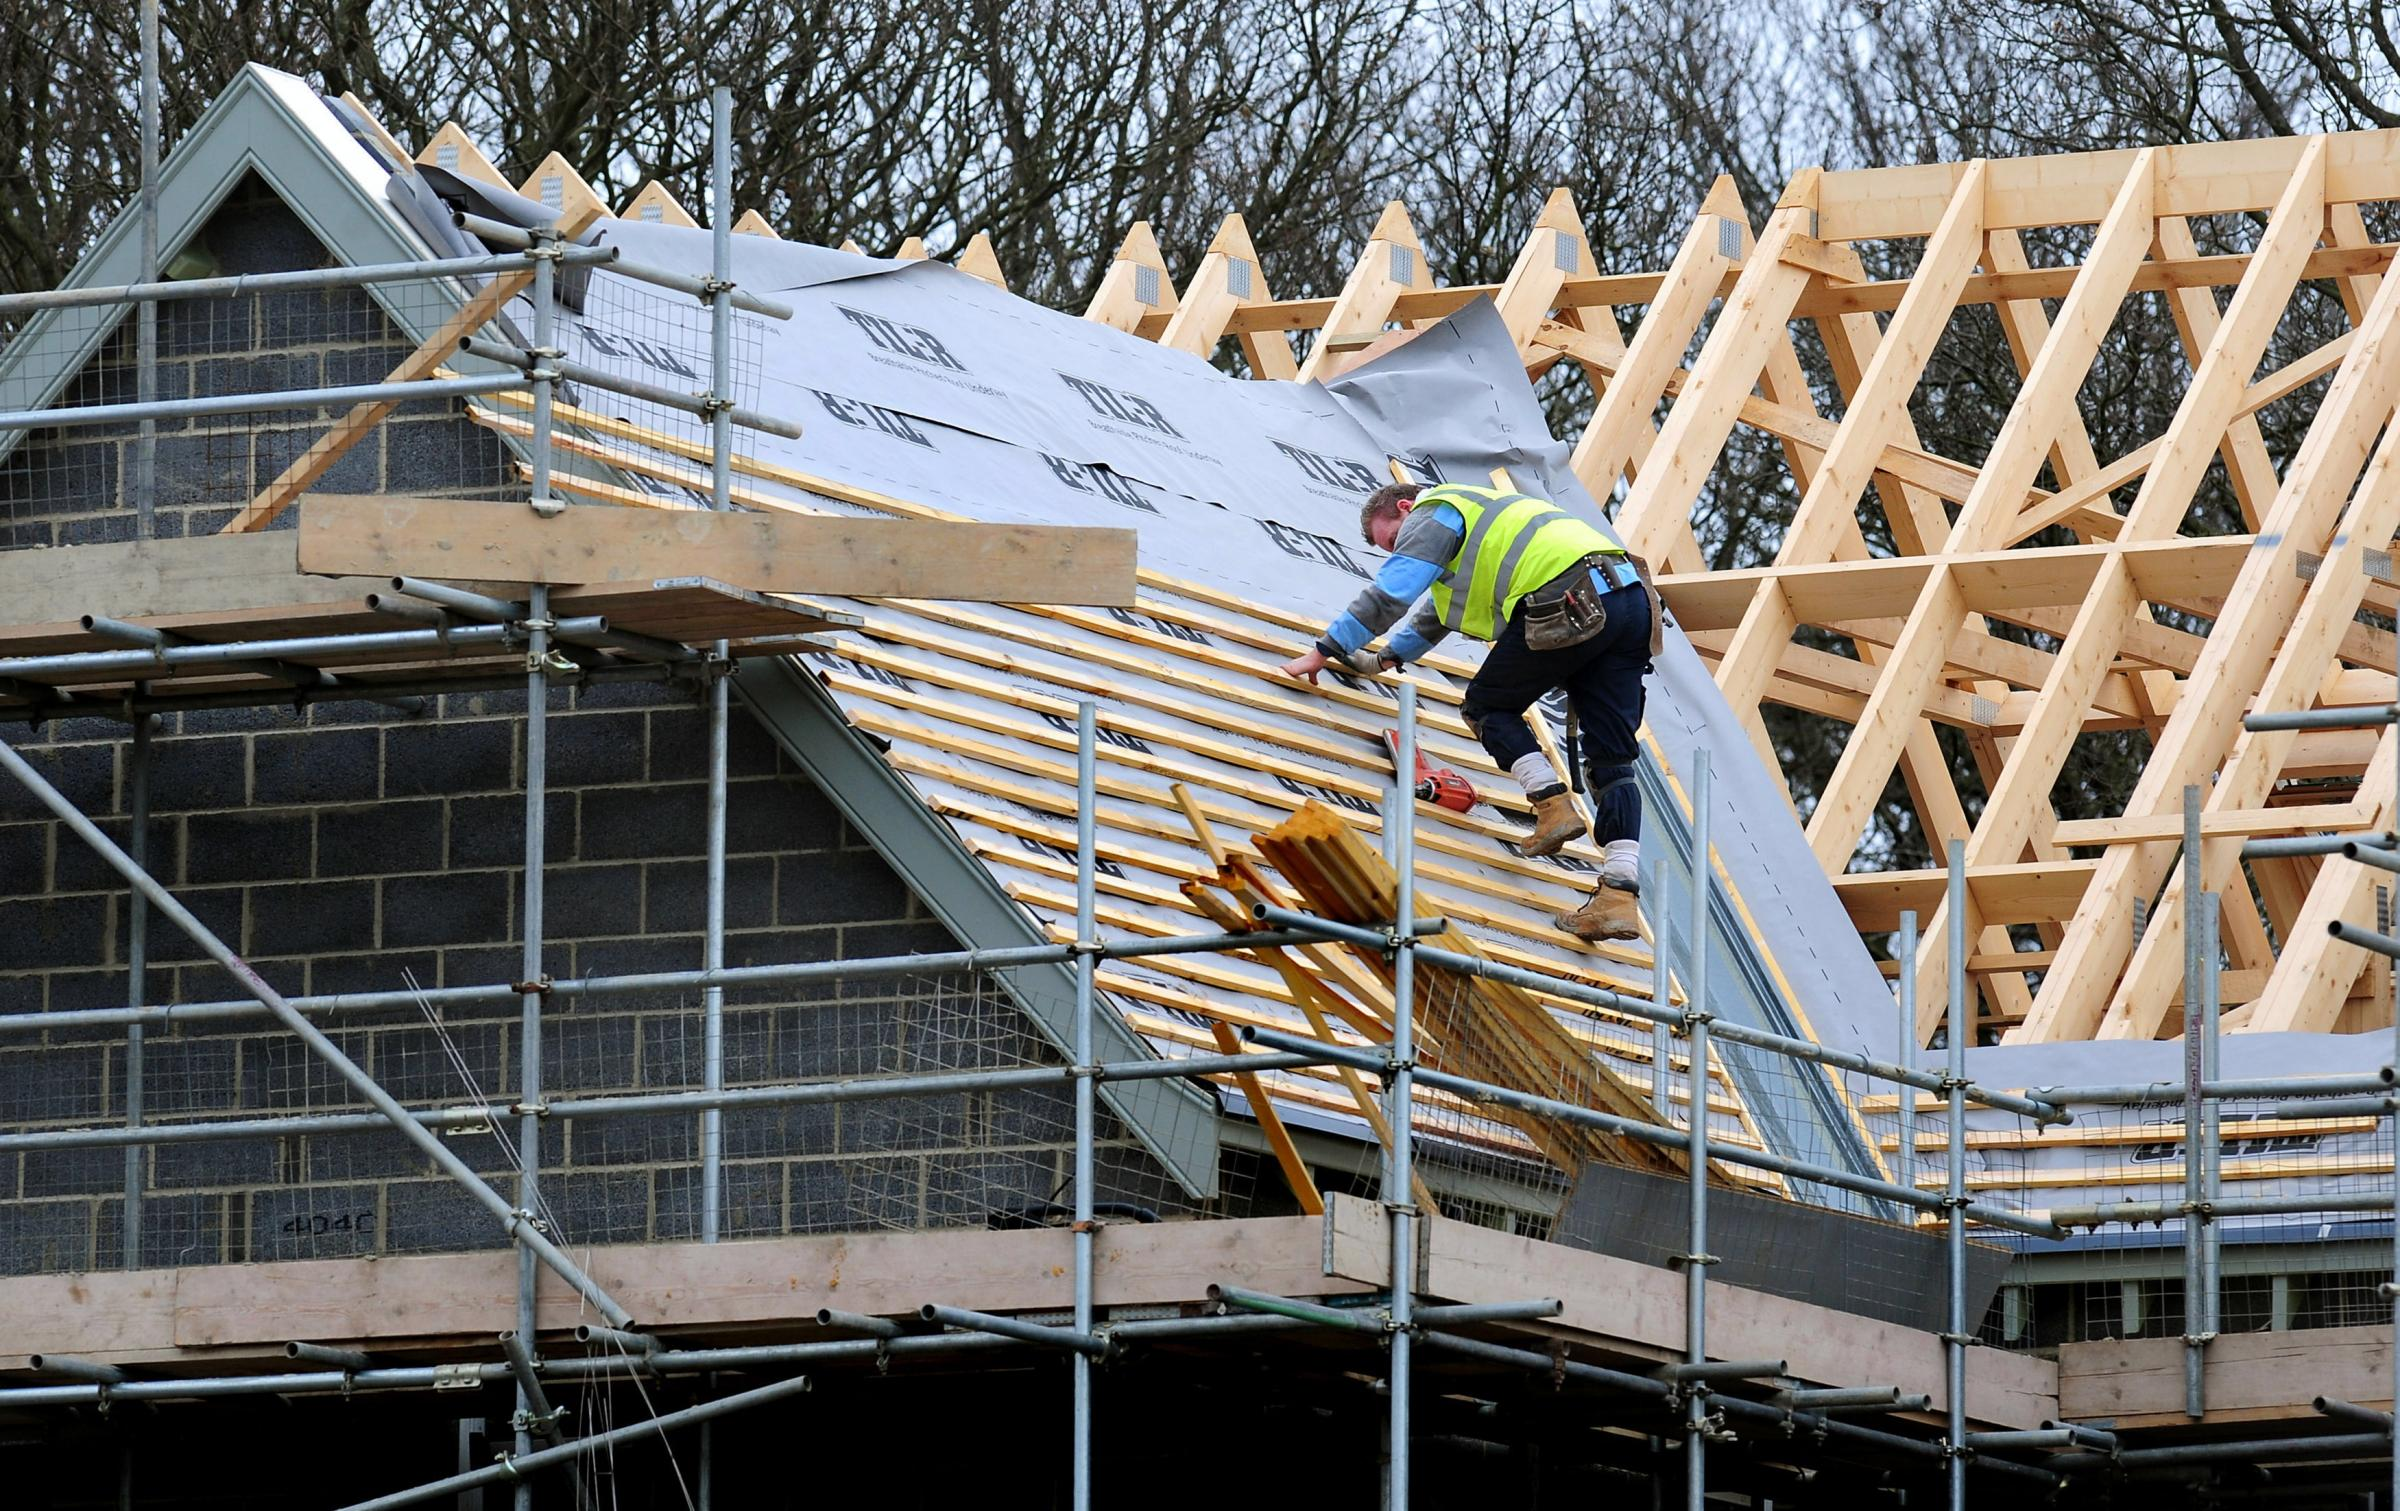 HOMES: The Government has reduced its house-building target